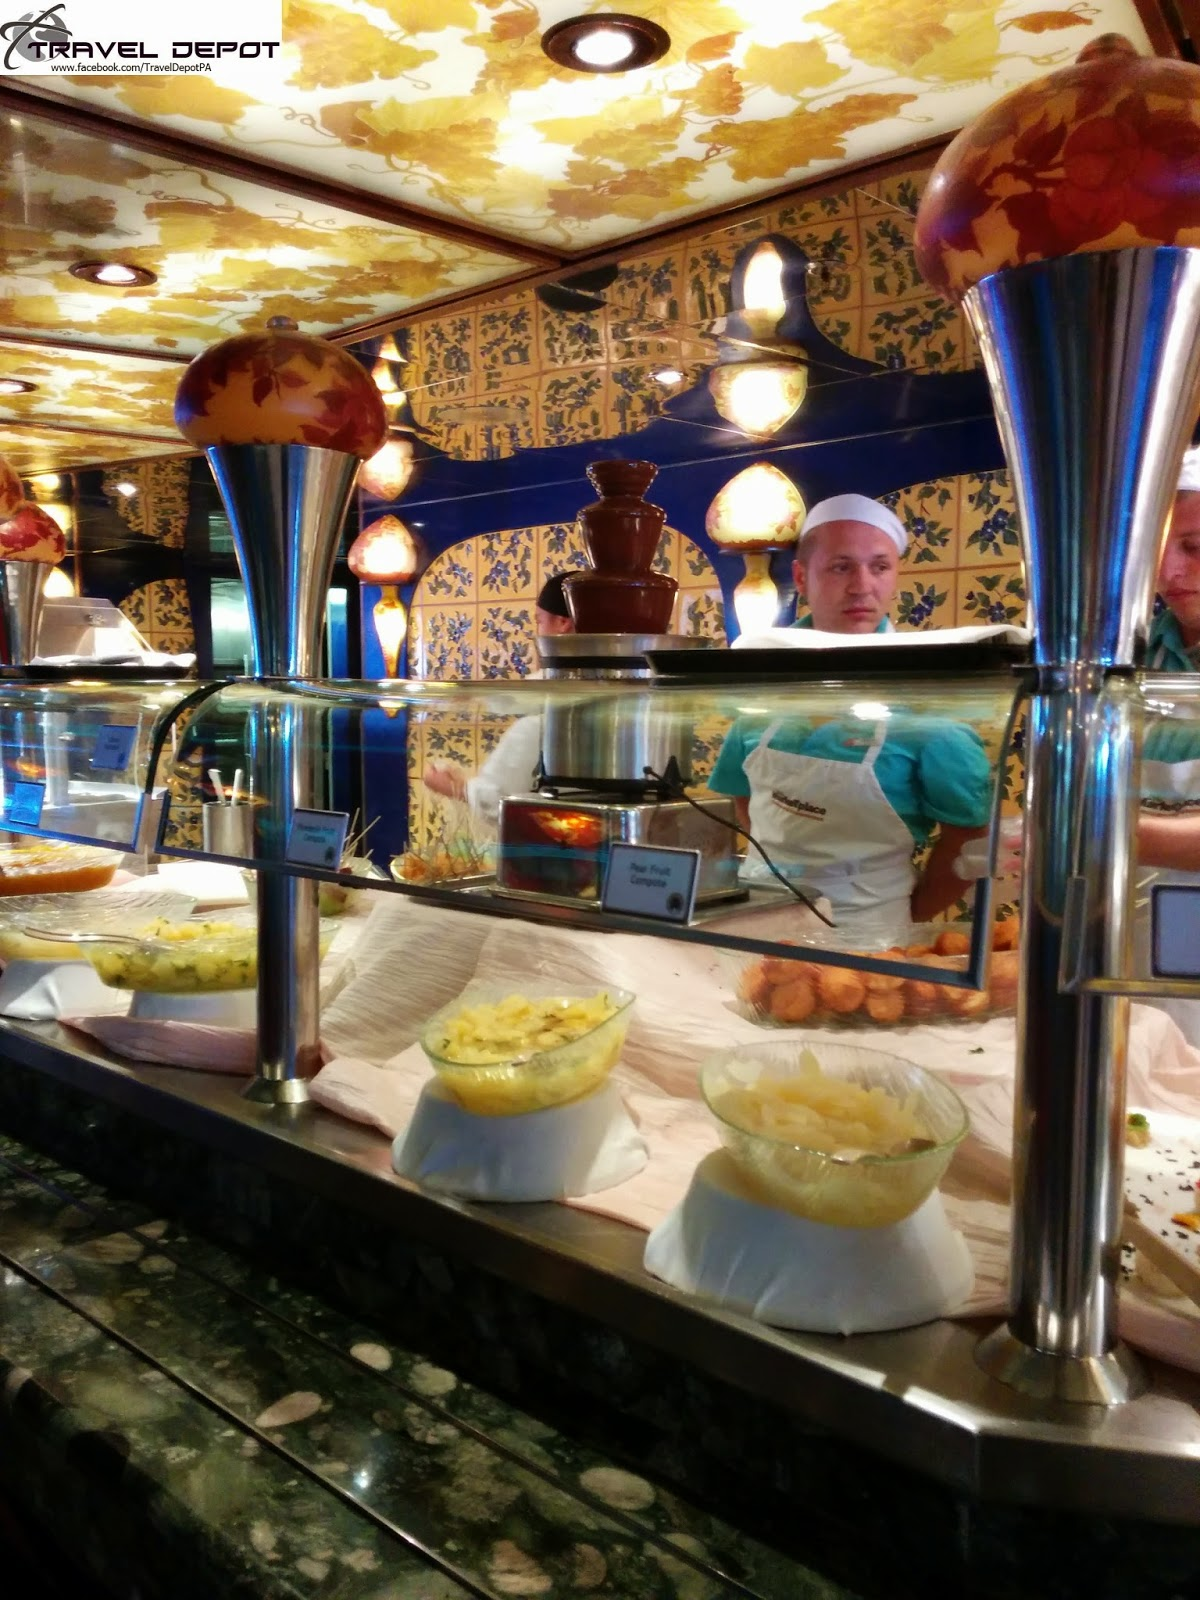 Yummy Food Aboard The Carnival Liberty Travel Depot